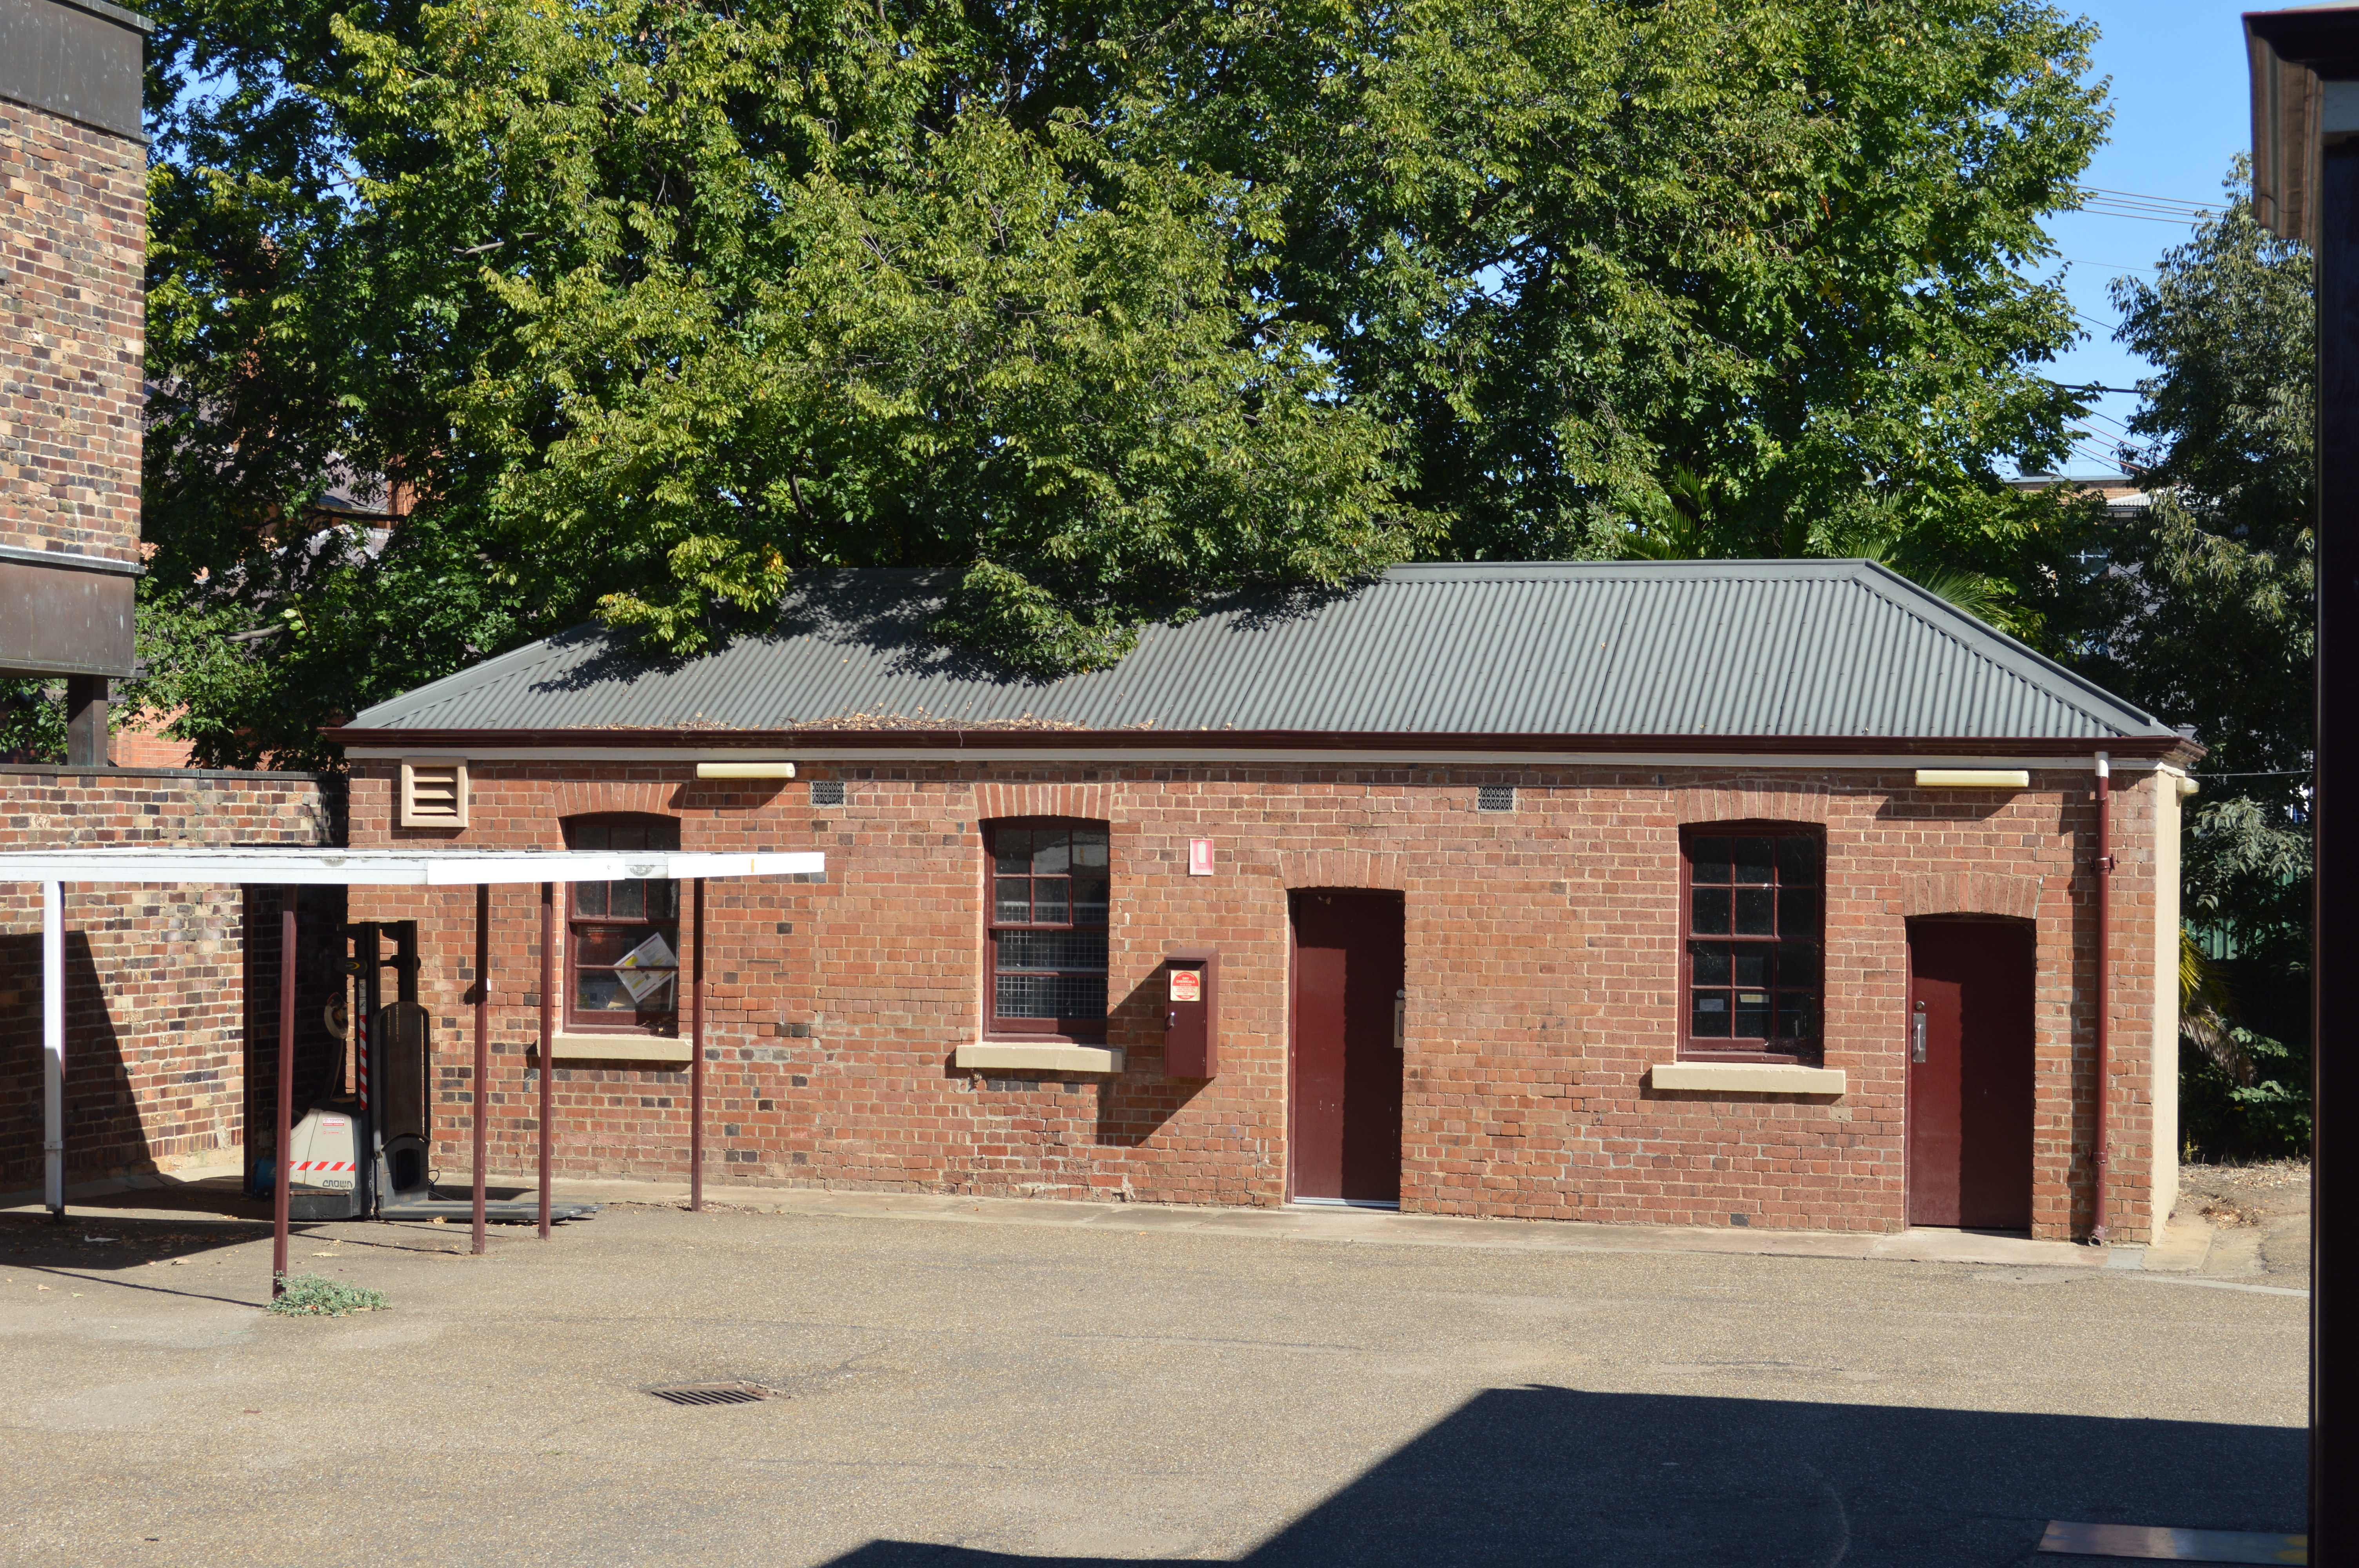 File:Cootamundra Post Office Outbuilding 001.JPG